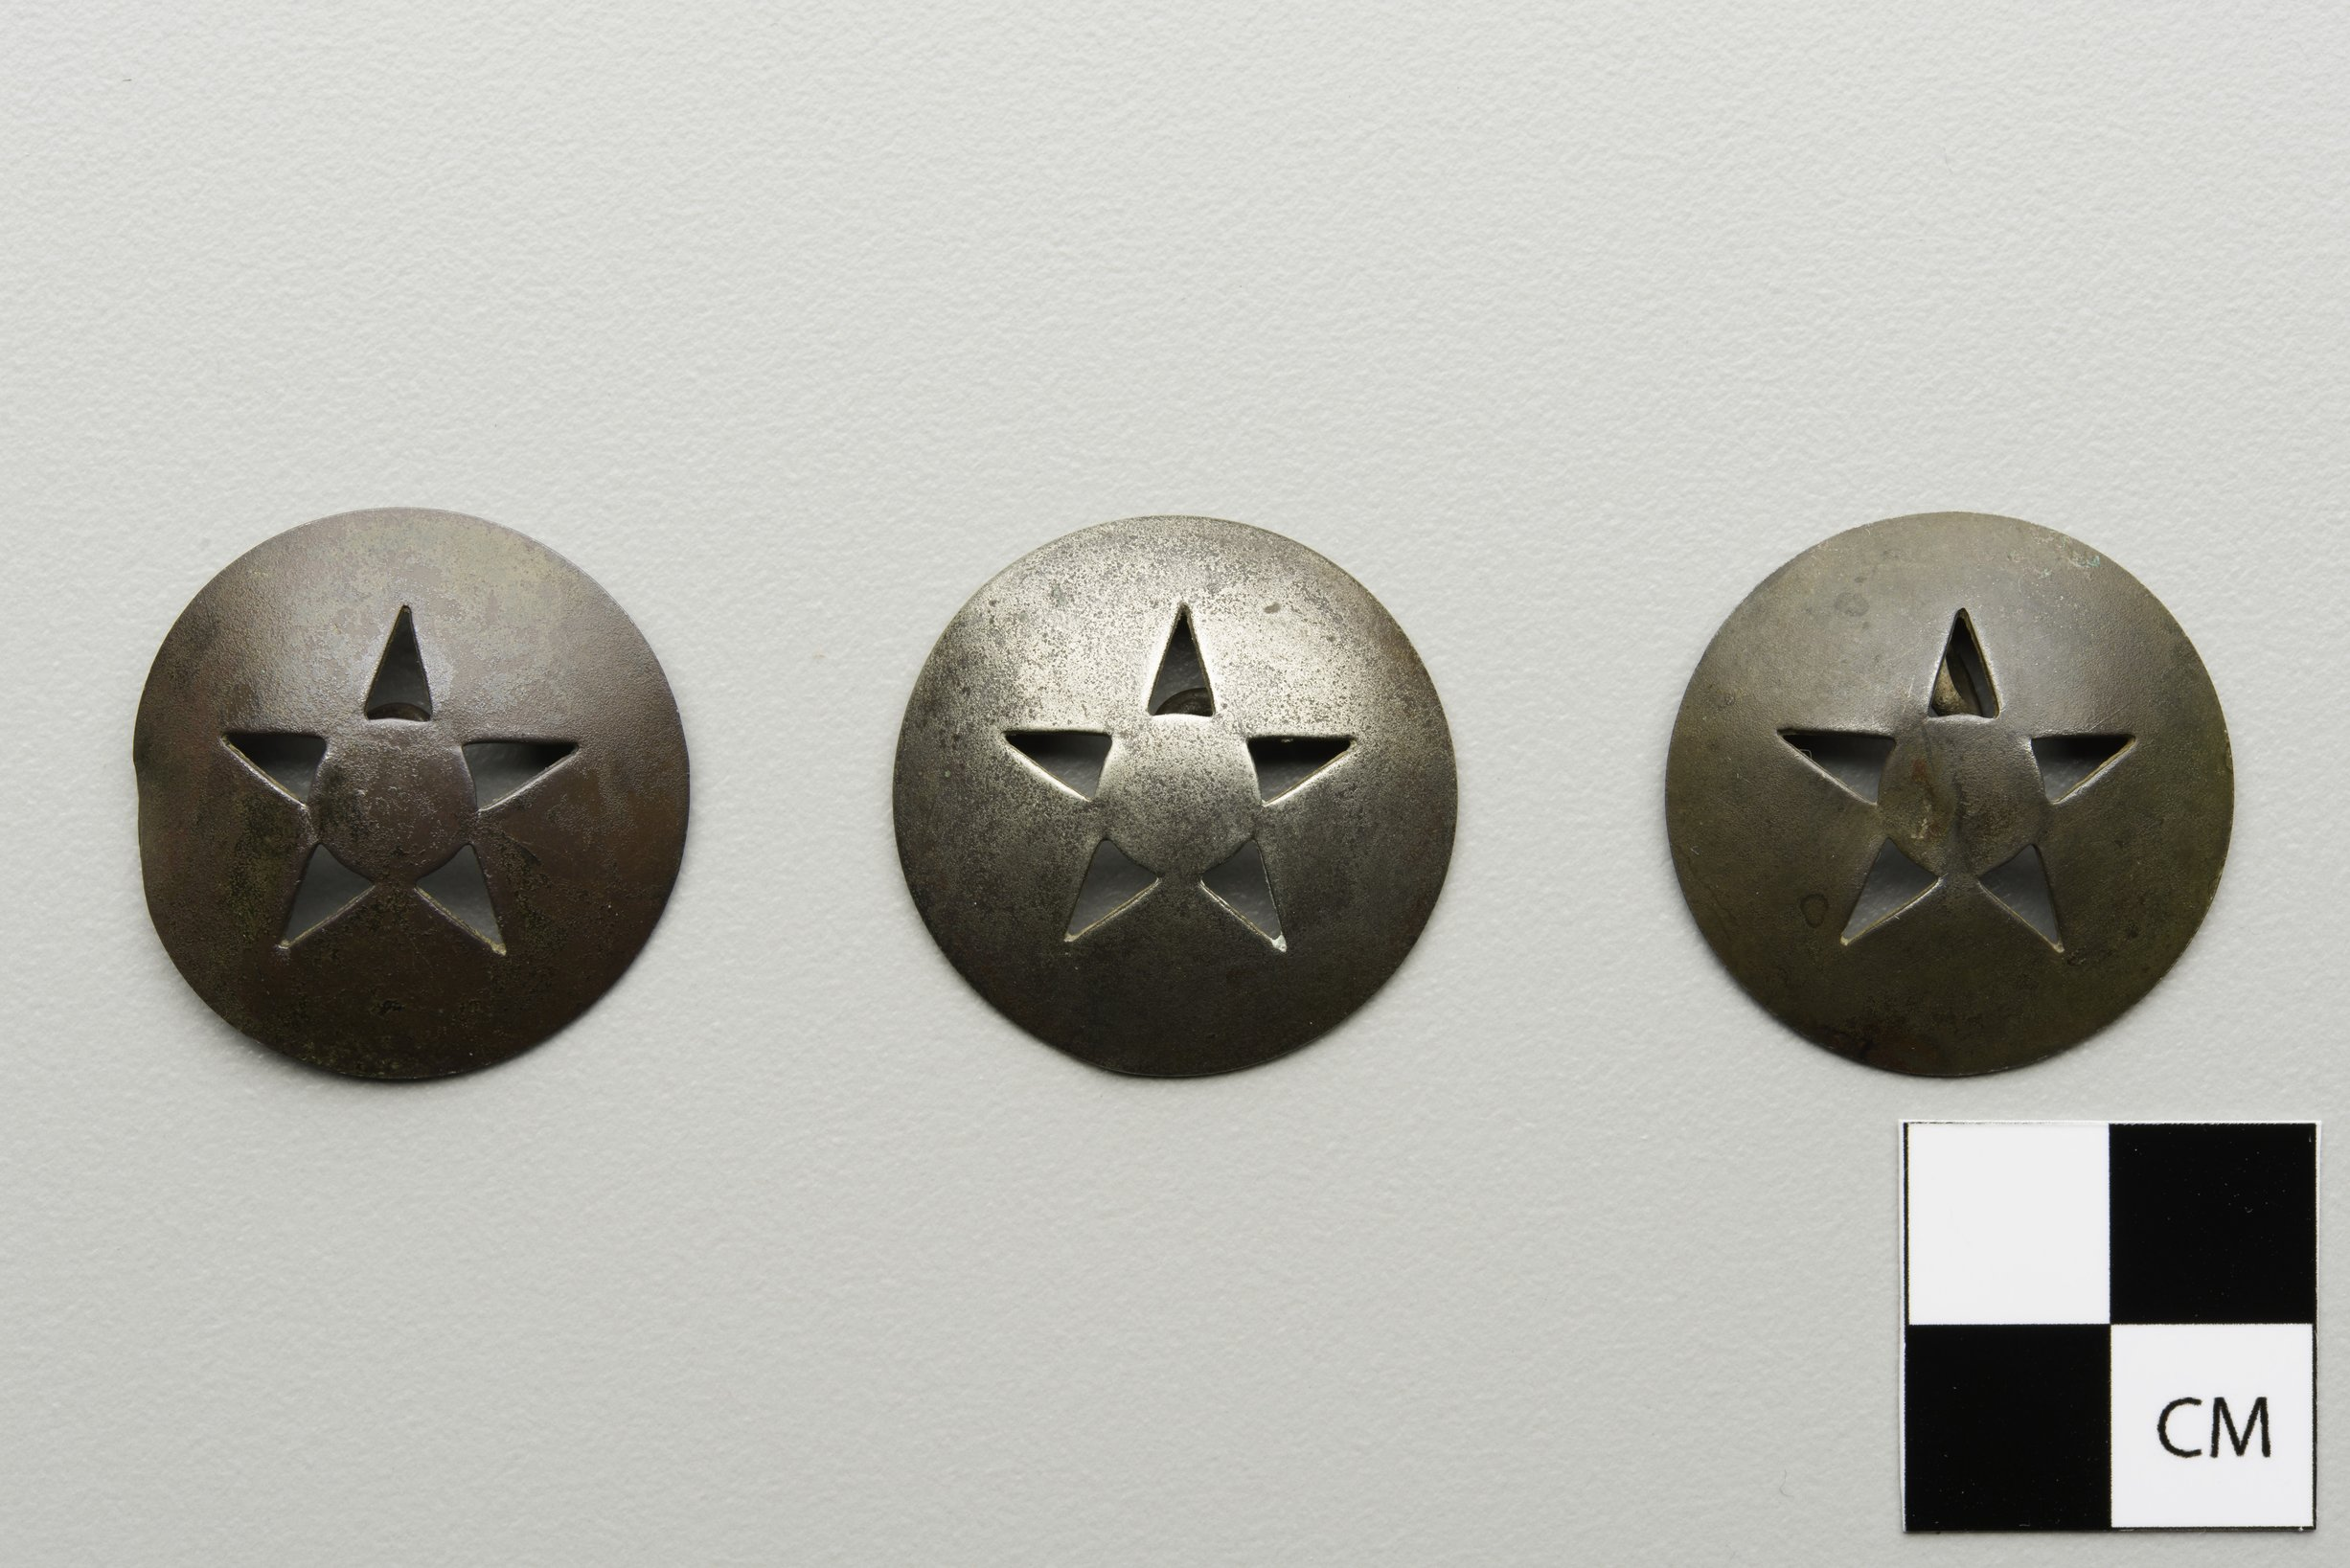 Conchos from the Canville Trading Post, 14NO396 - 3